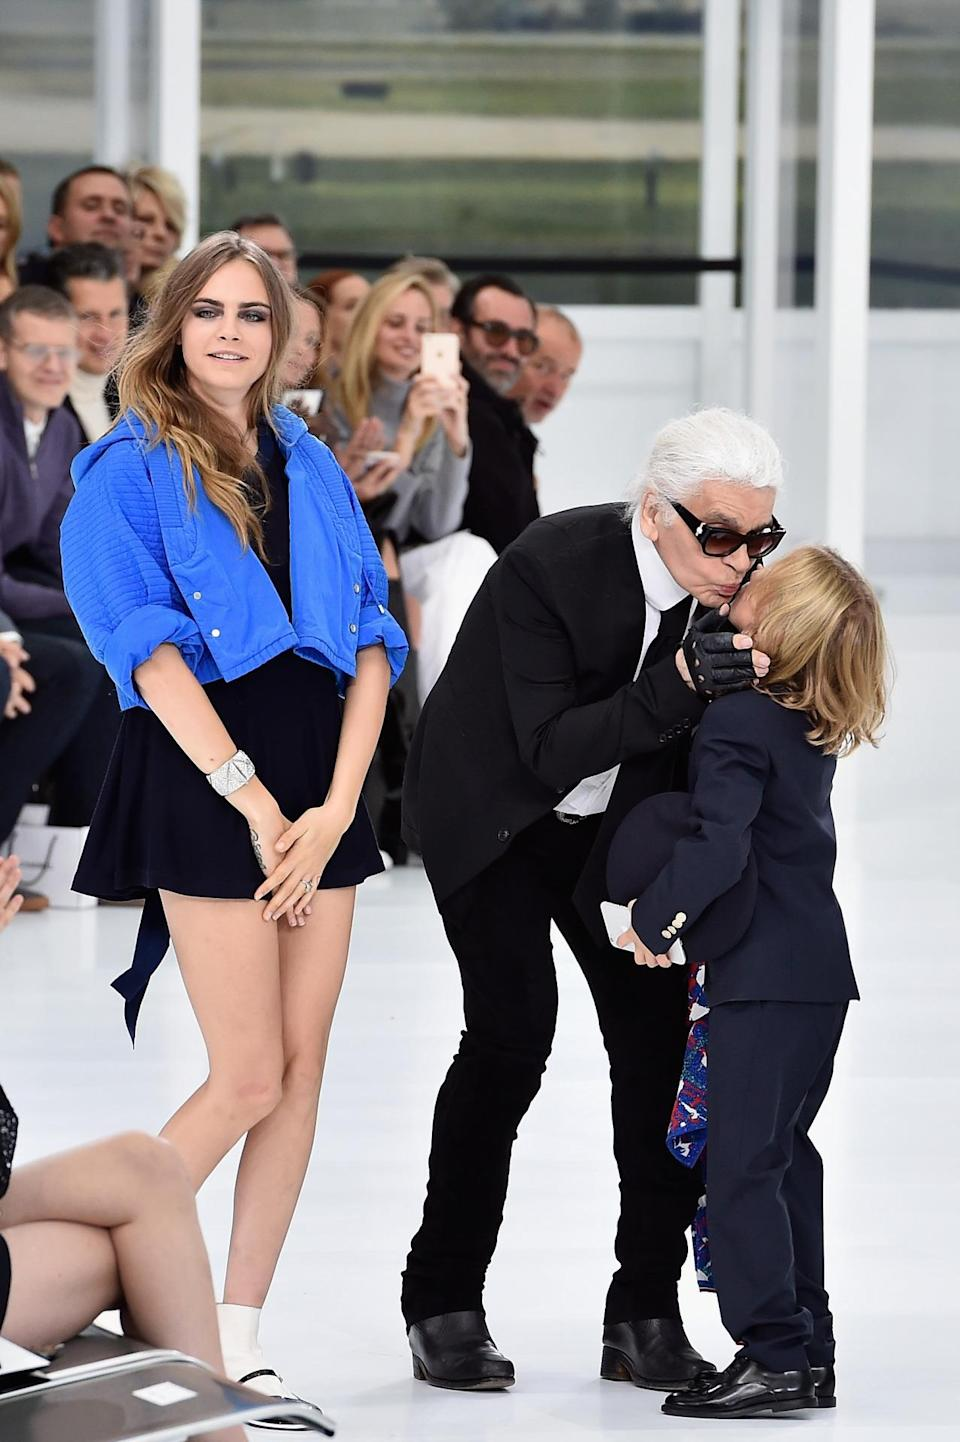 """<p>Delevingne sat front row with girlfriend Annie Clark and <a href=""""https://www.yahoo.com/style/mini-models-are-having-a-moment-first-99518037053.html"""" data-ylk=""""slk:Hudson Kroenig;outcm:mb_qualified_link;_E:mb_qualified_link;ct:story;"""" class=""""link rapid-noclick-resp yahoo-link"""">Hudson Kroenig</a>, Lagerfeld's godson (Hudson's dad walked in the show). (<i>Photo: Getty Images)</i></p>"""